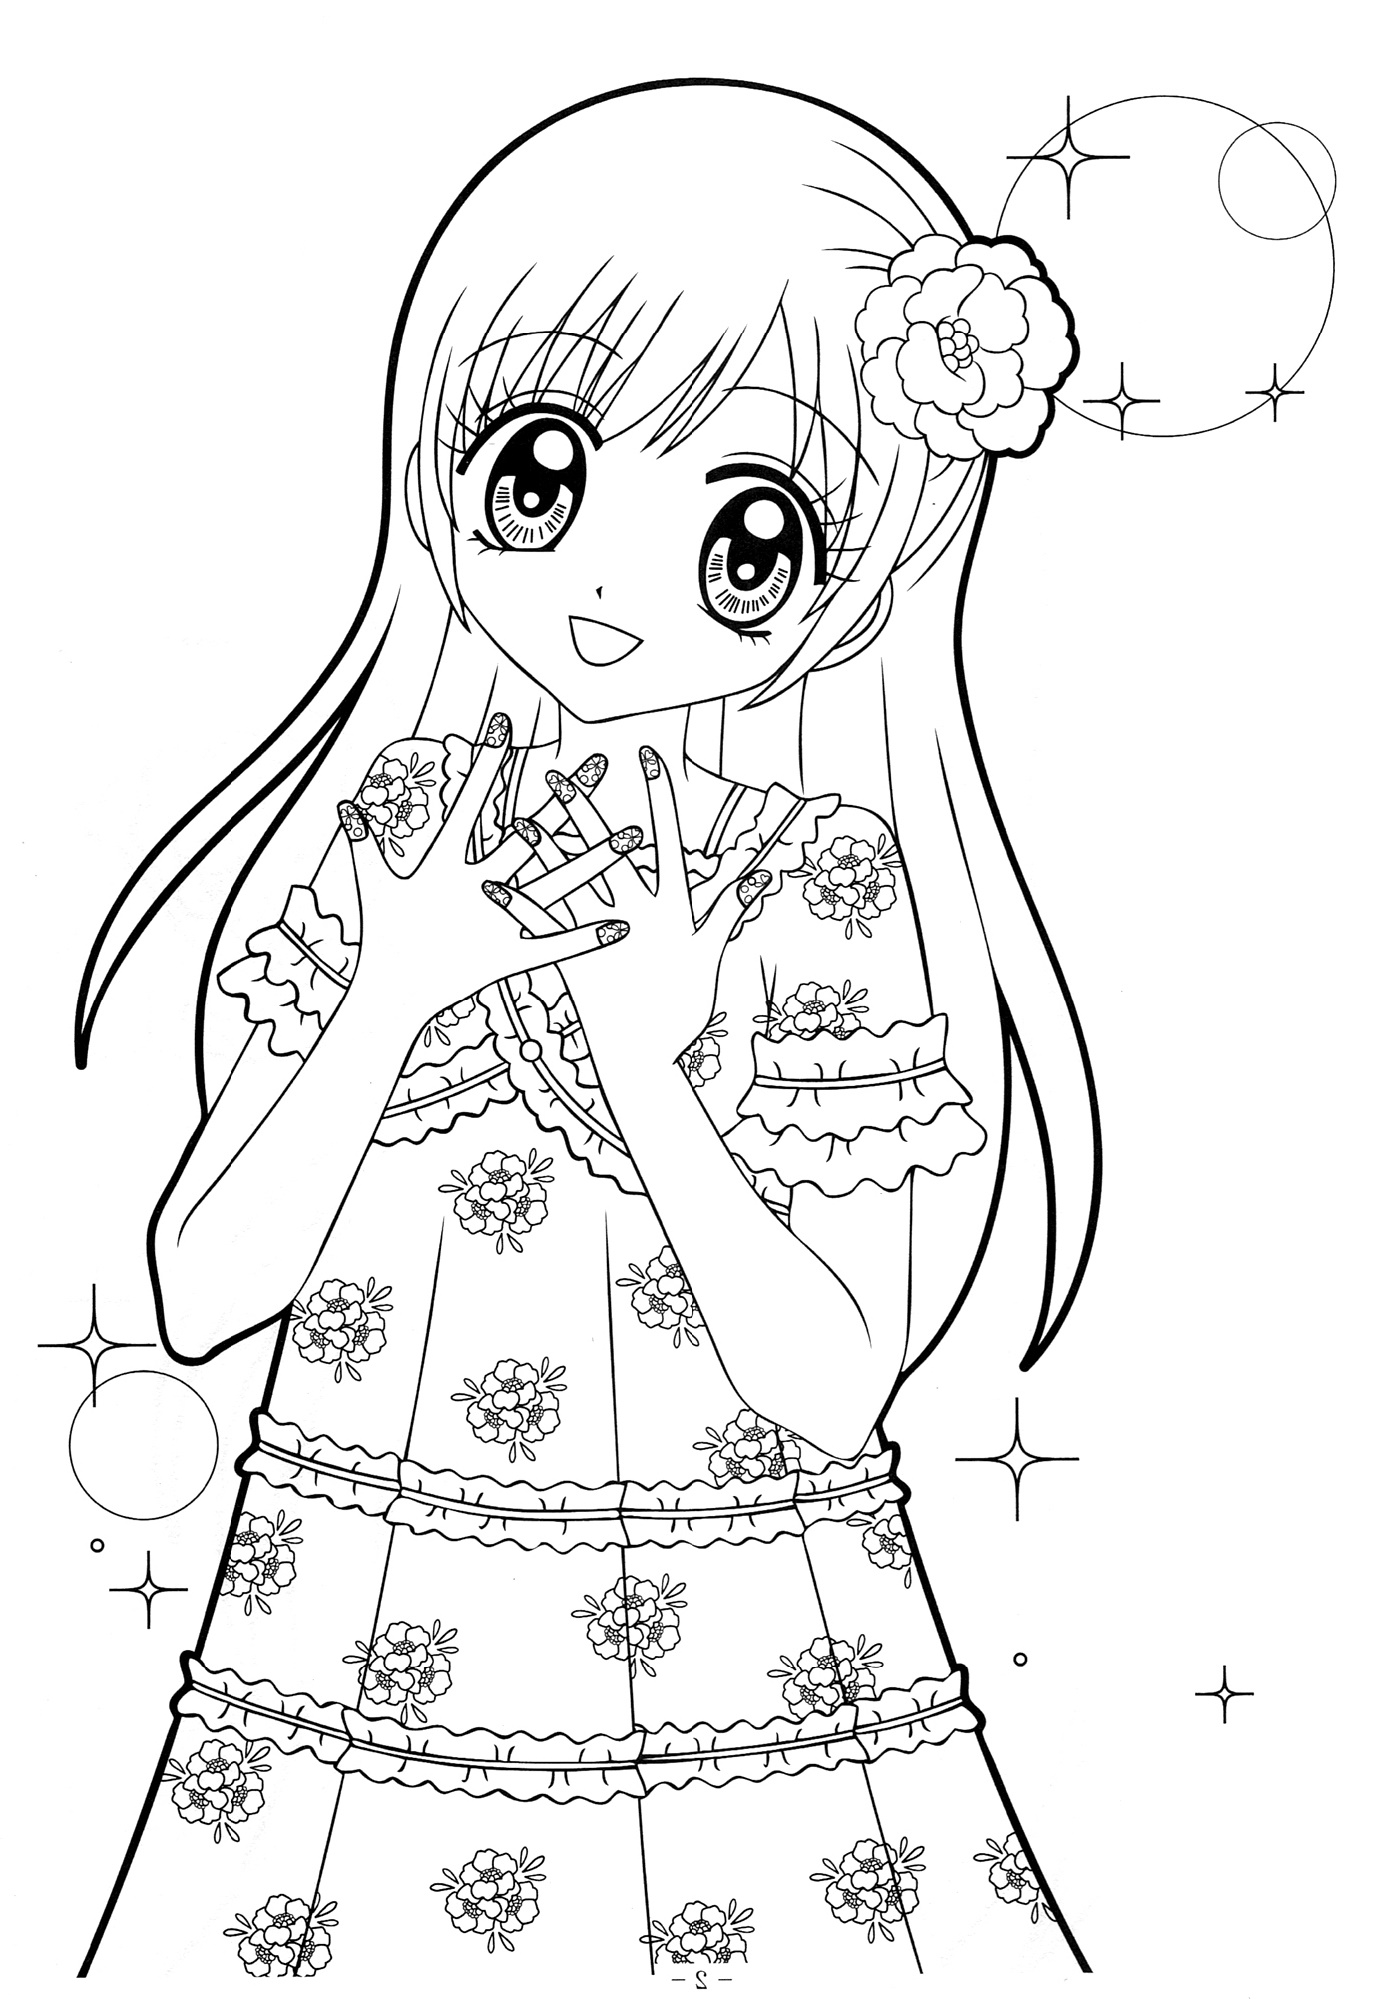 anime little girl coloring pages adorable chibi anime coloring page coloring sky little pages girl anime coloring